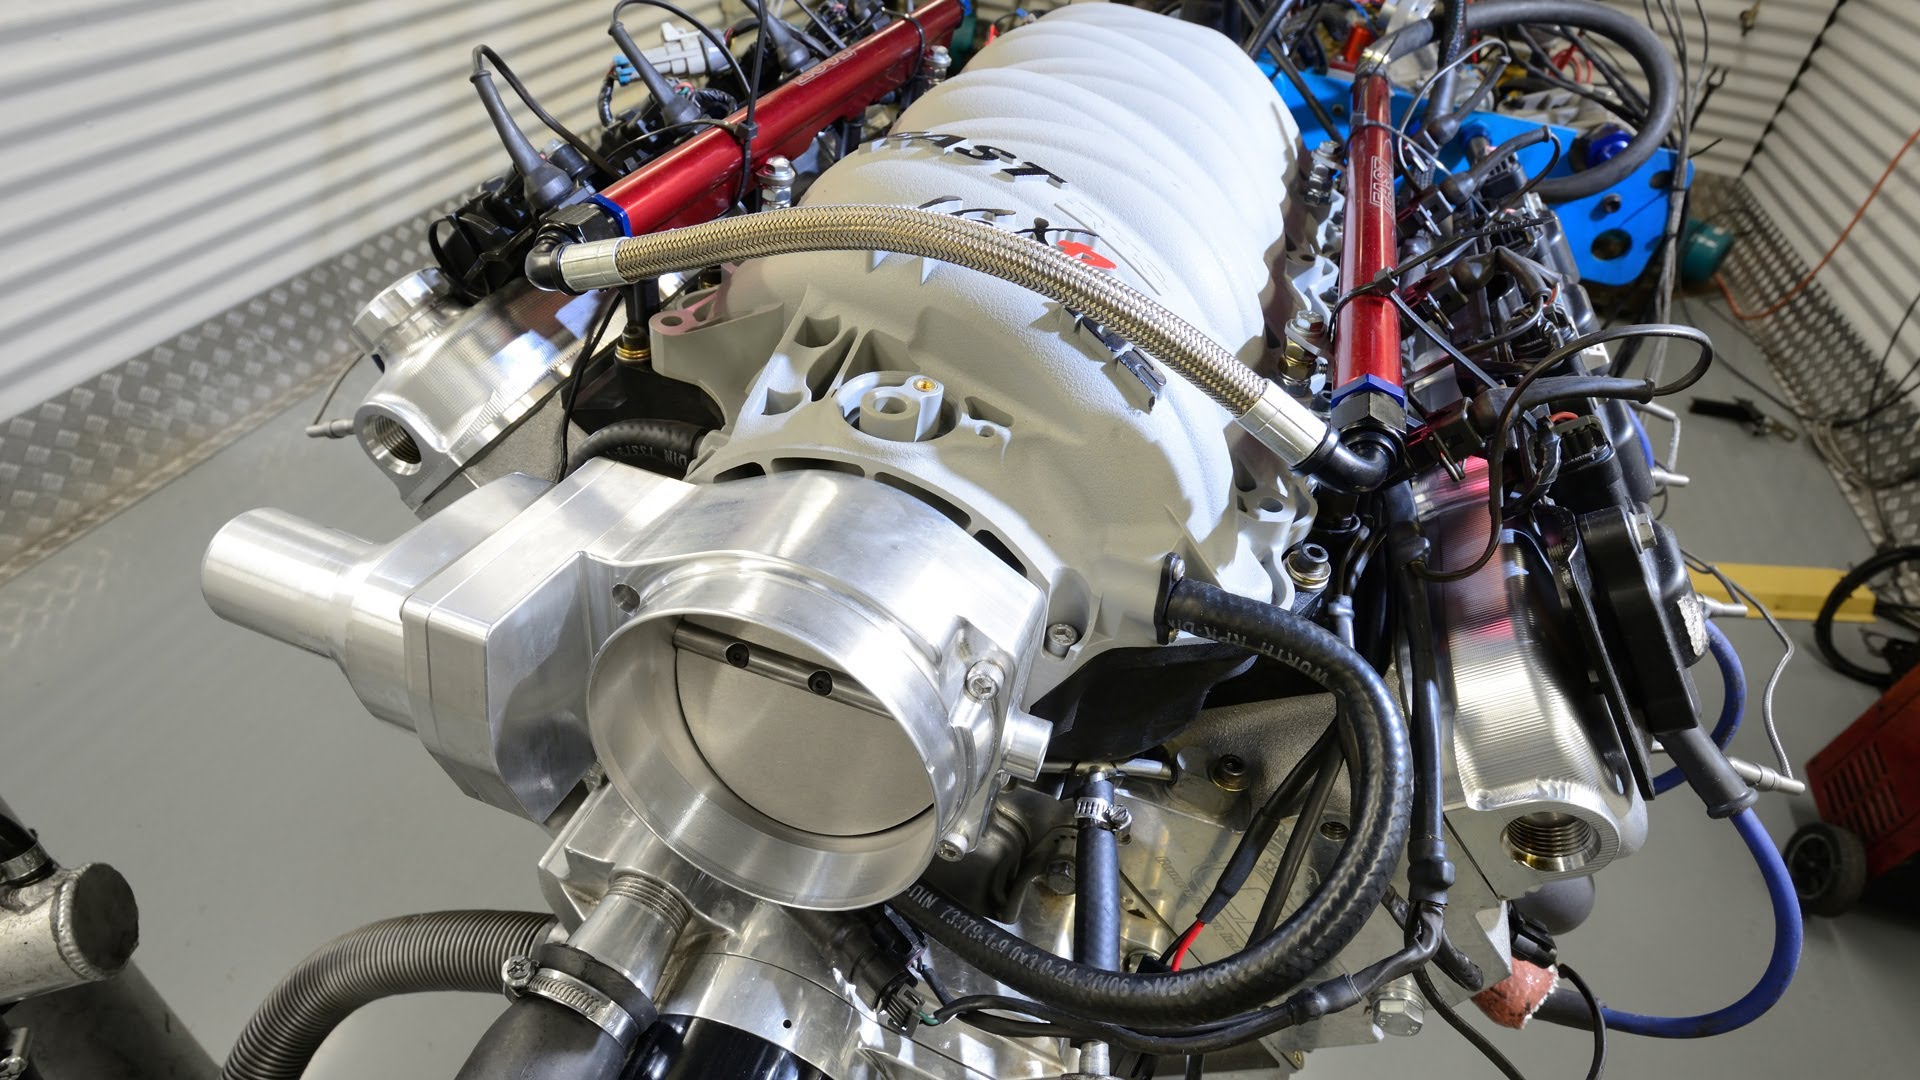 Seen An LS3 Engine For Sale? Here's What You Need To Know!